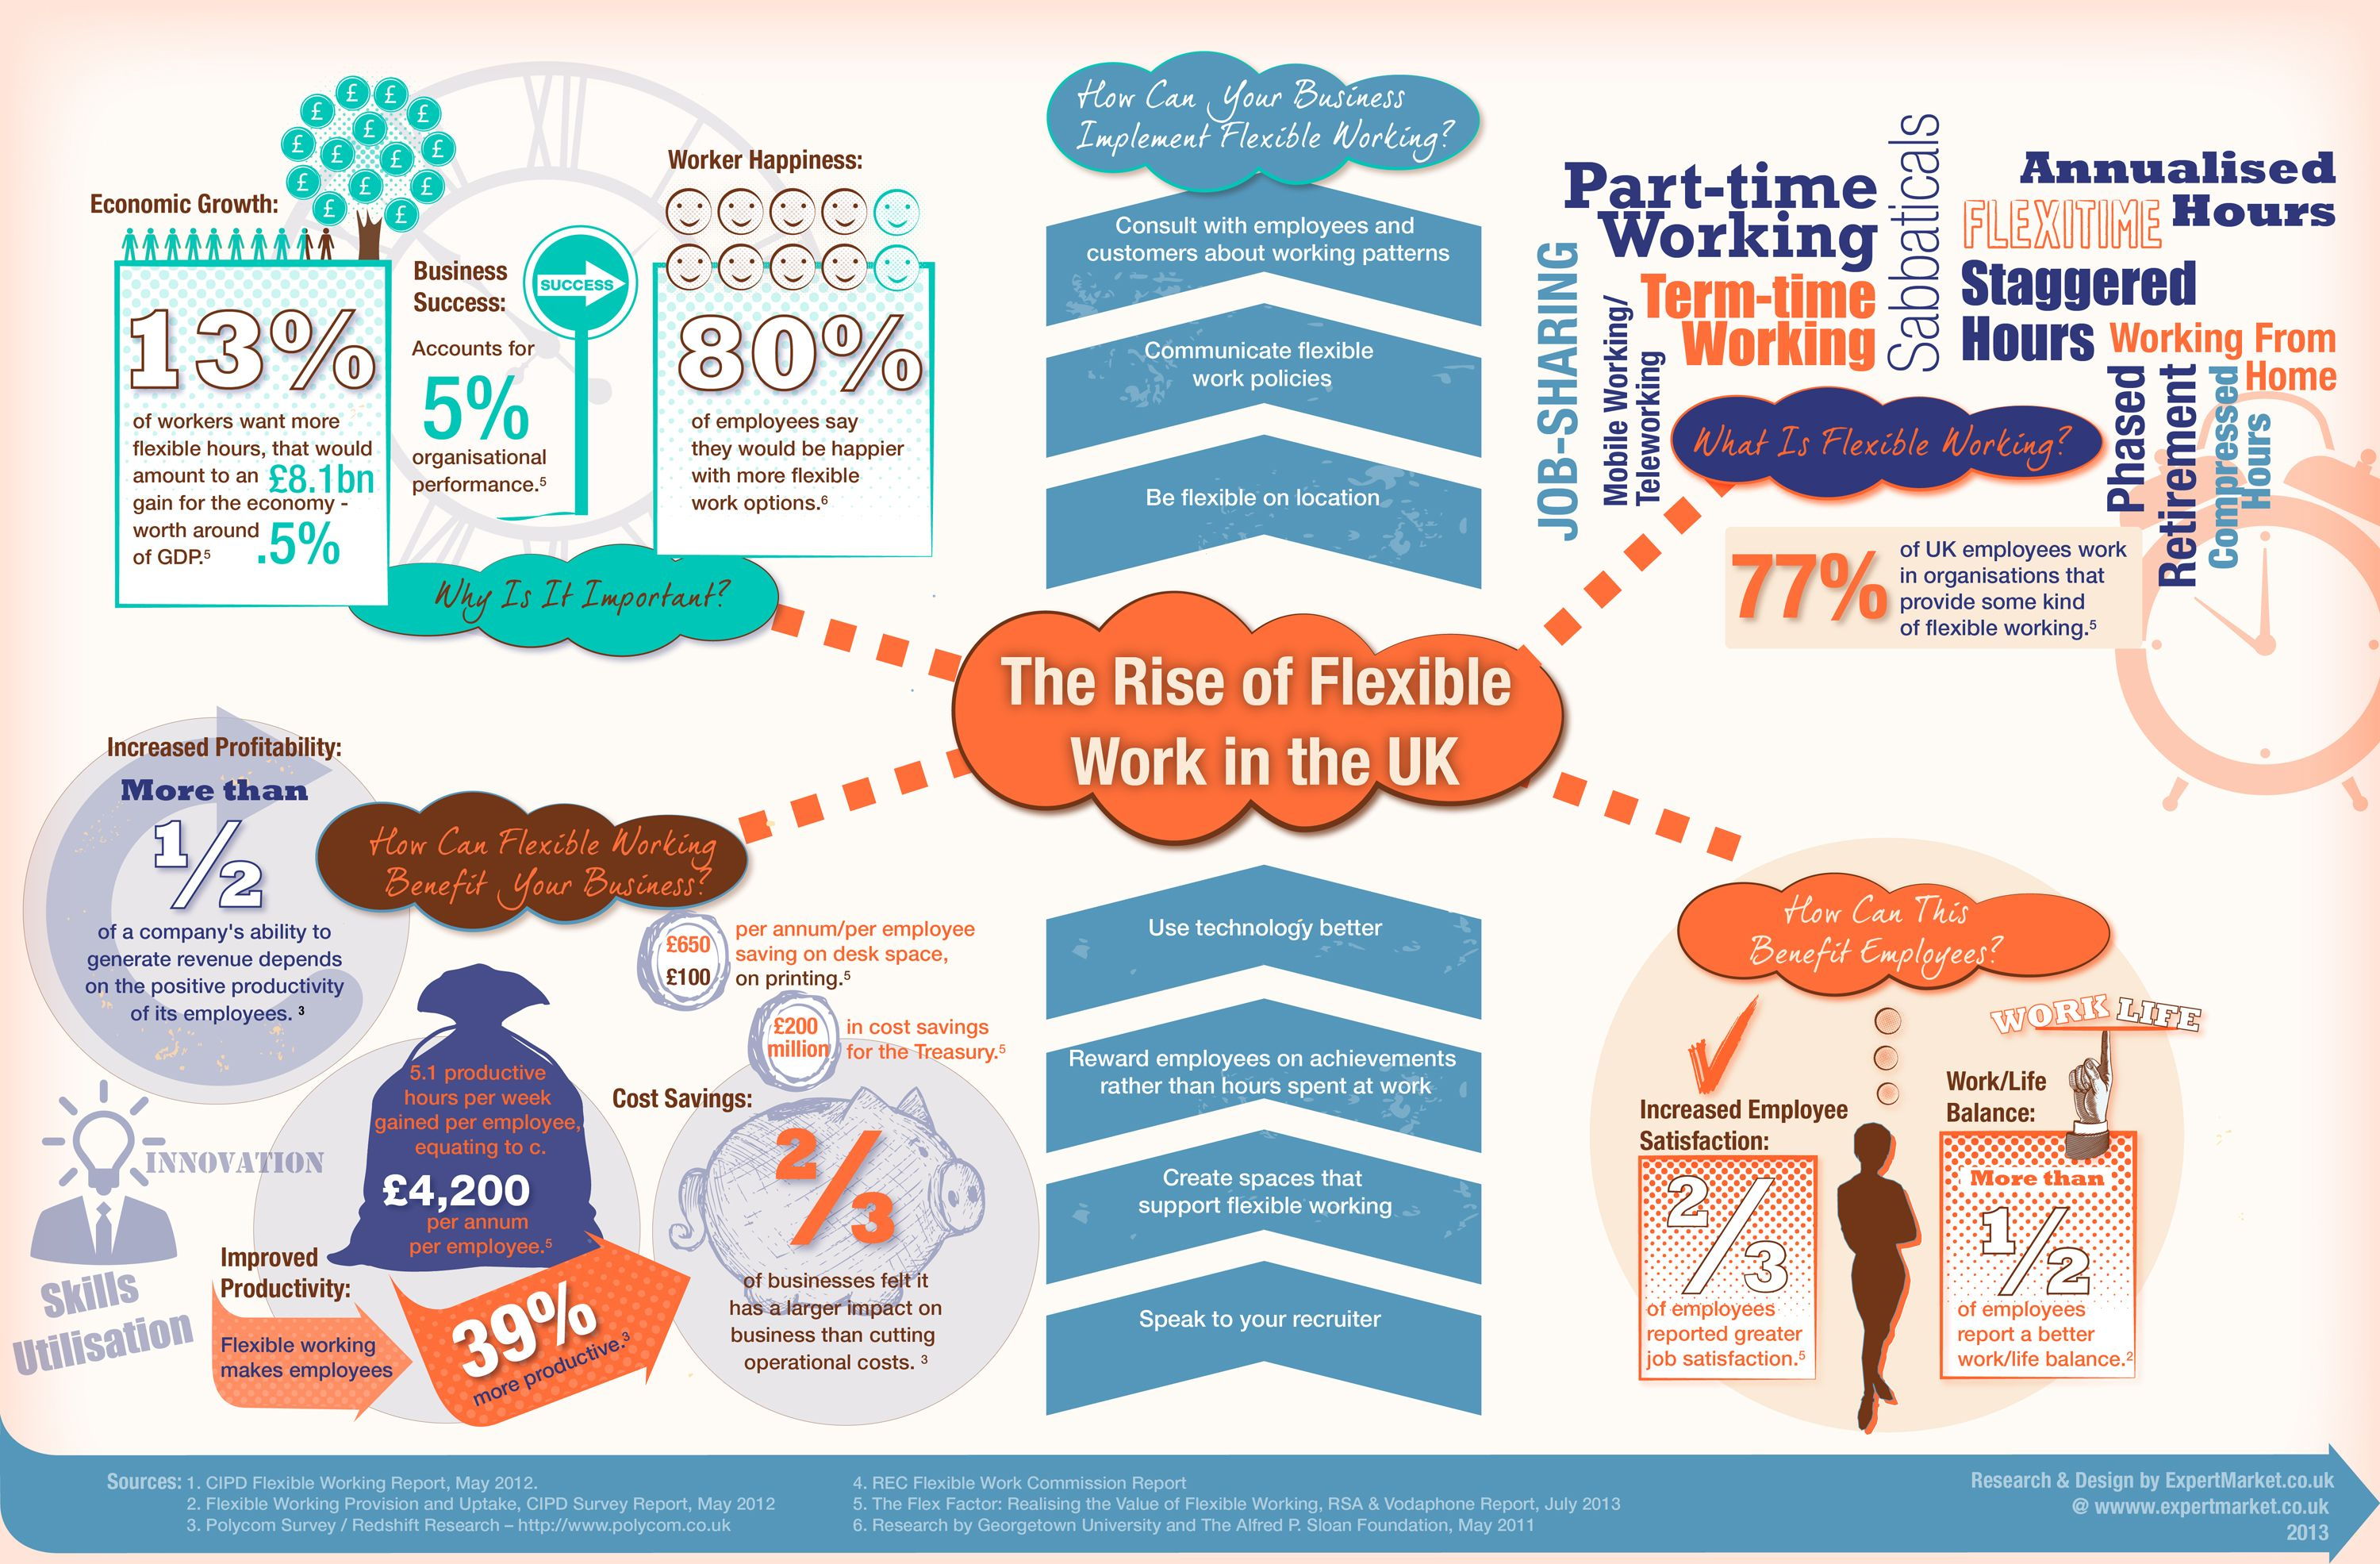 The rise of flexible work in the UK - Infographic